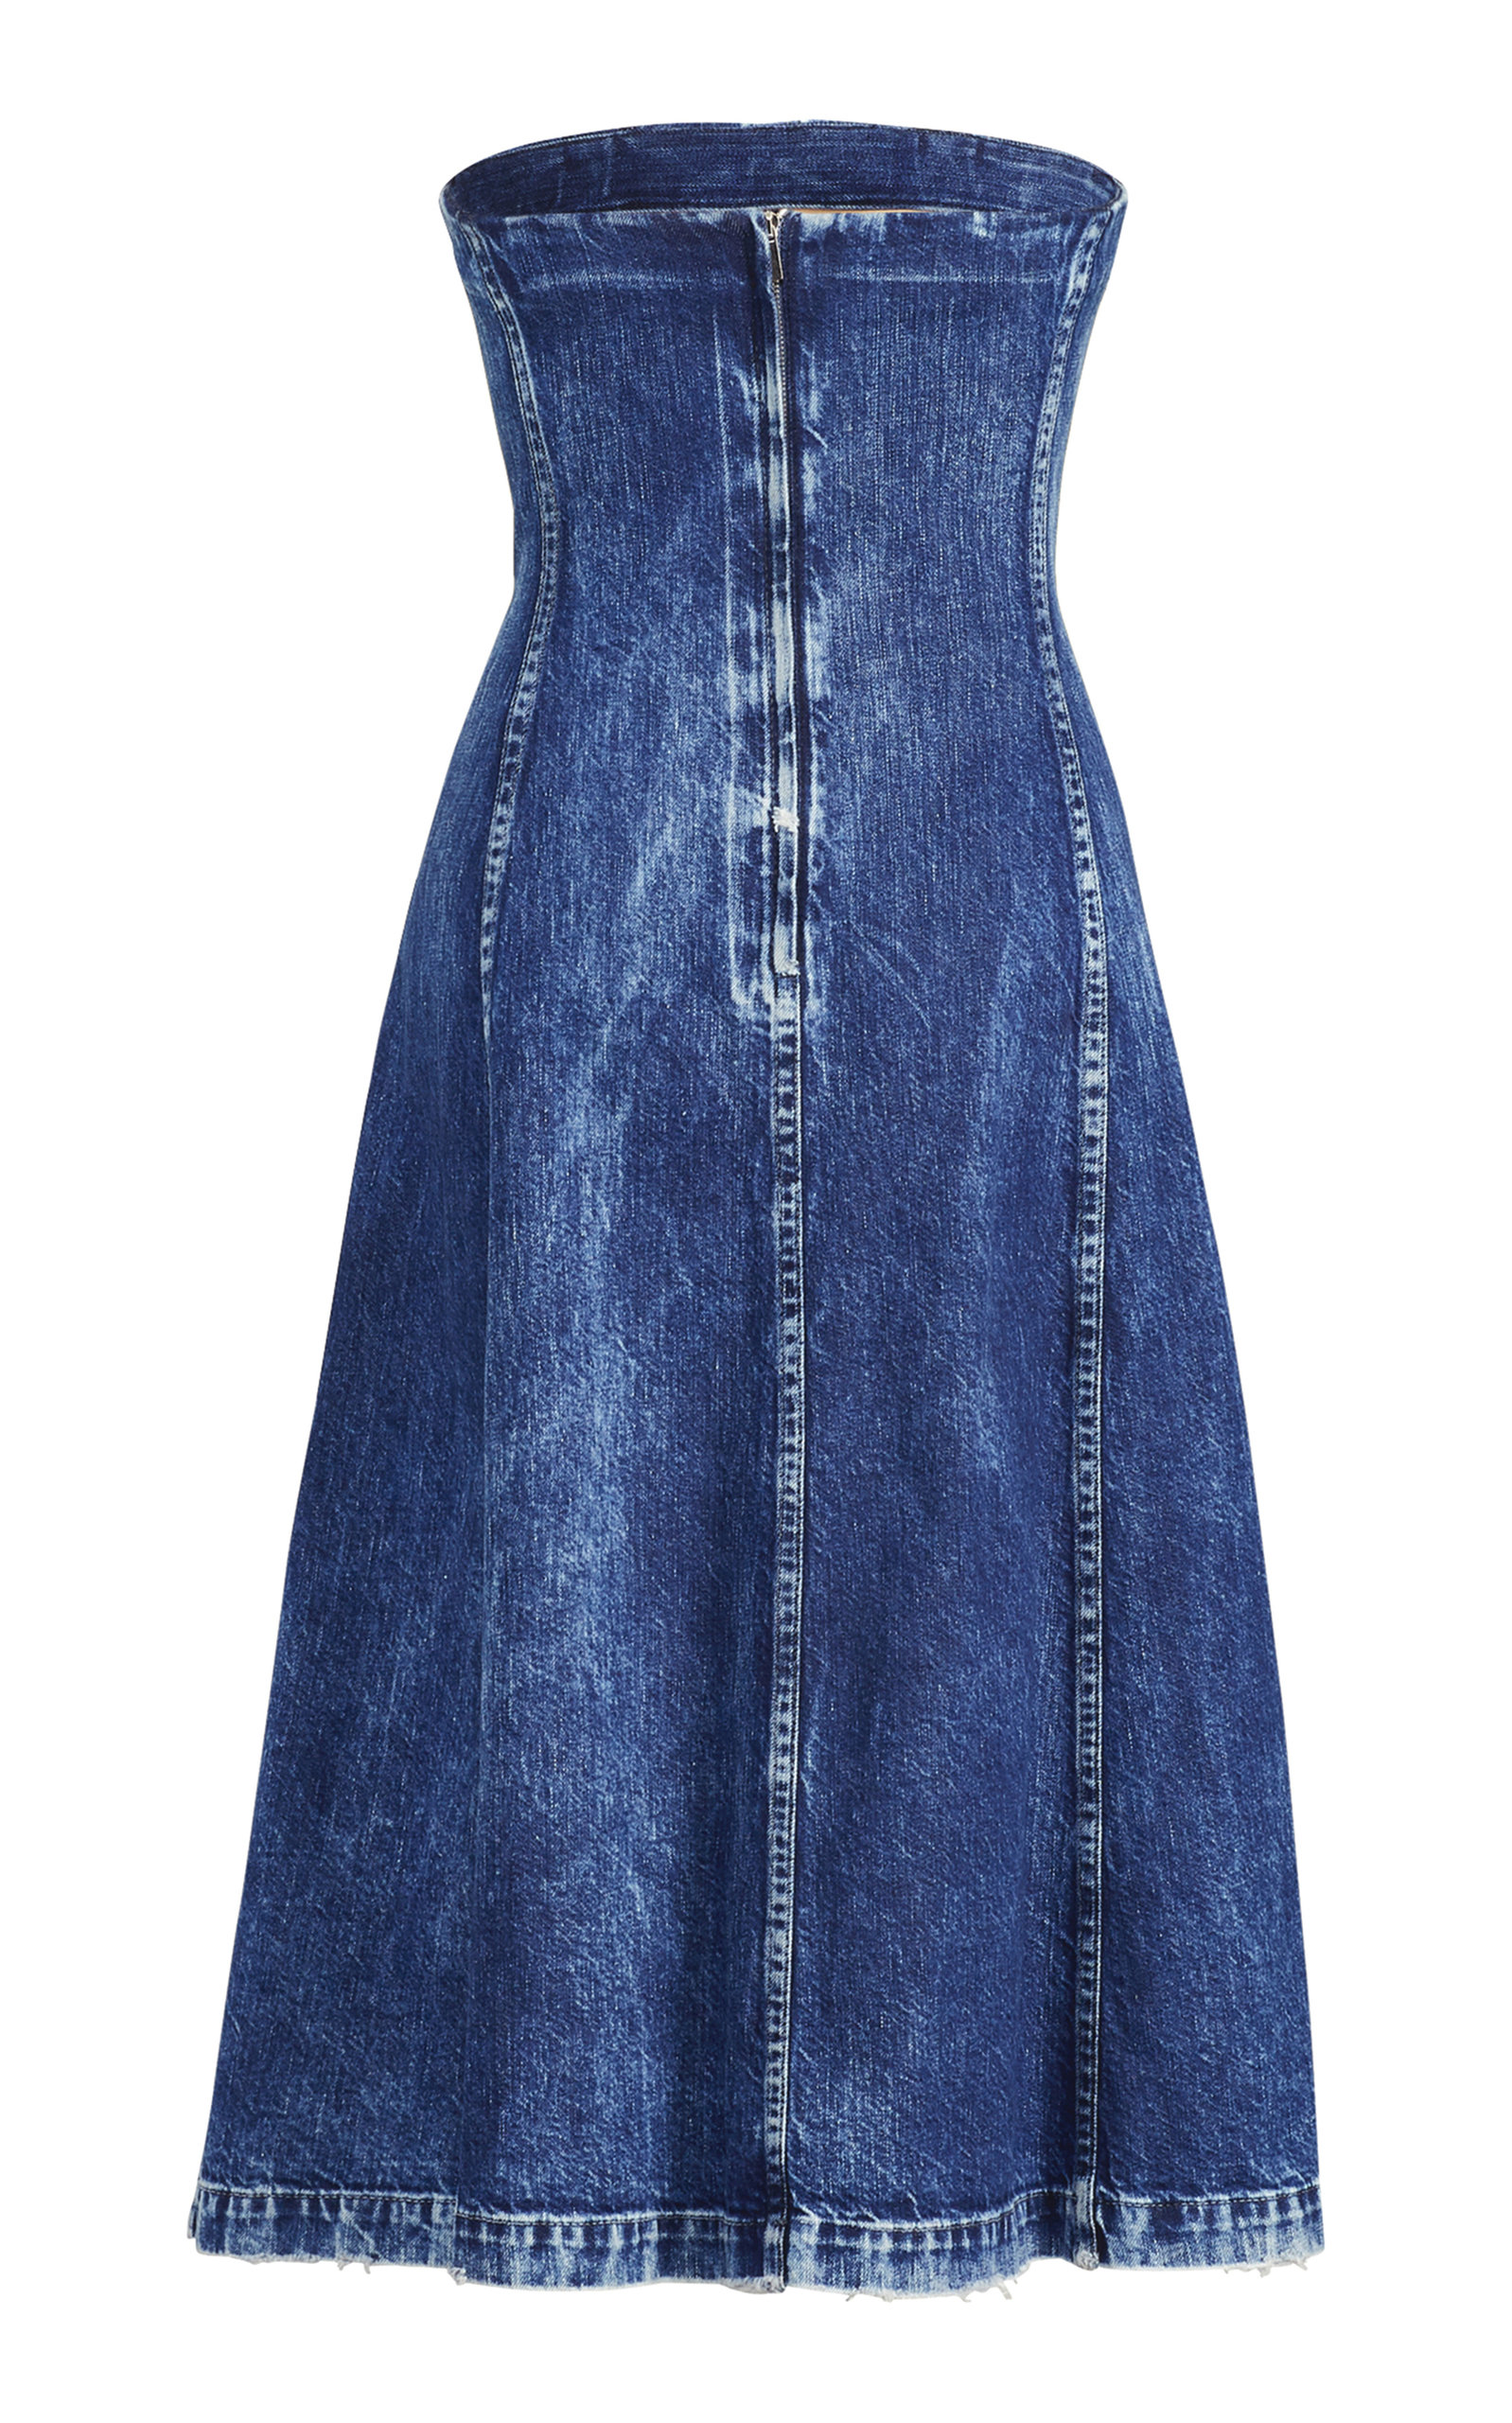 3b684fd179f Ralph LaurenEsmee Denim Strapless Dress. CLOSE. Loading. Loading